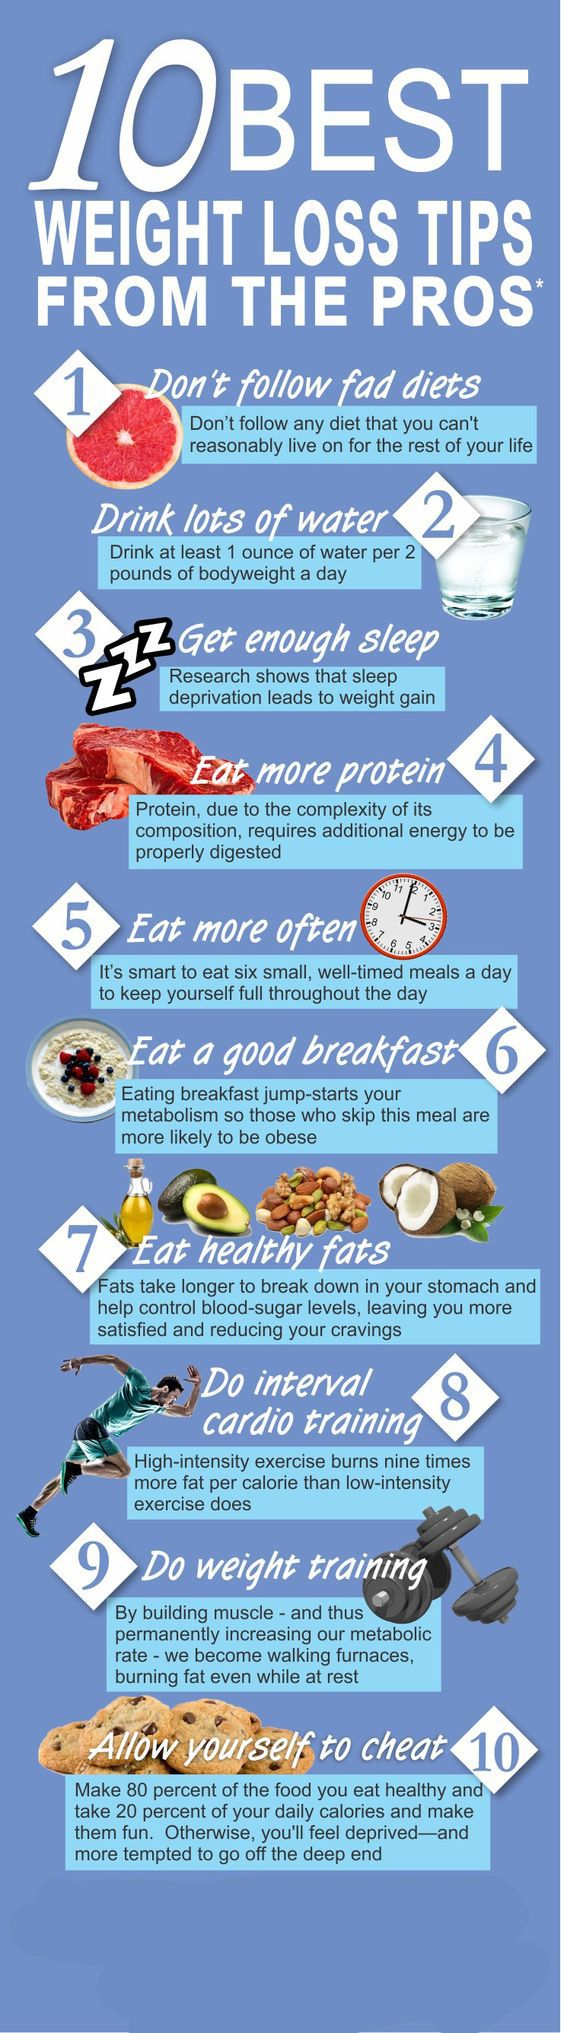 10 Best Weight Loss Tips from the professional #weightloss #loseweight #howtoloseweight #WeightLossDiet #weightlosstips #healthyfood #DietPlans #Diet #healthlyliving